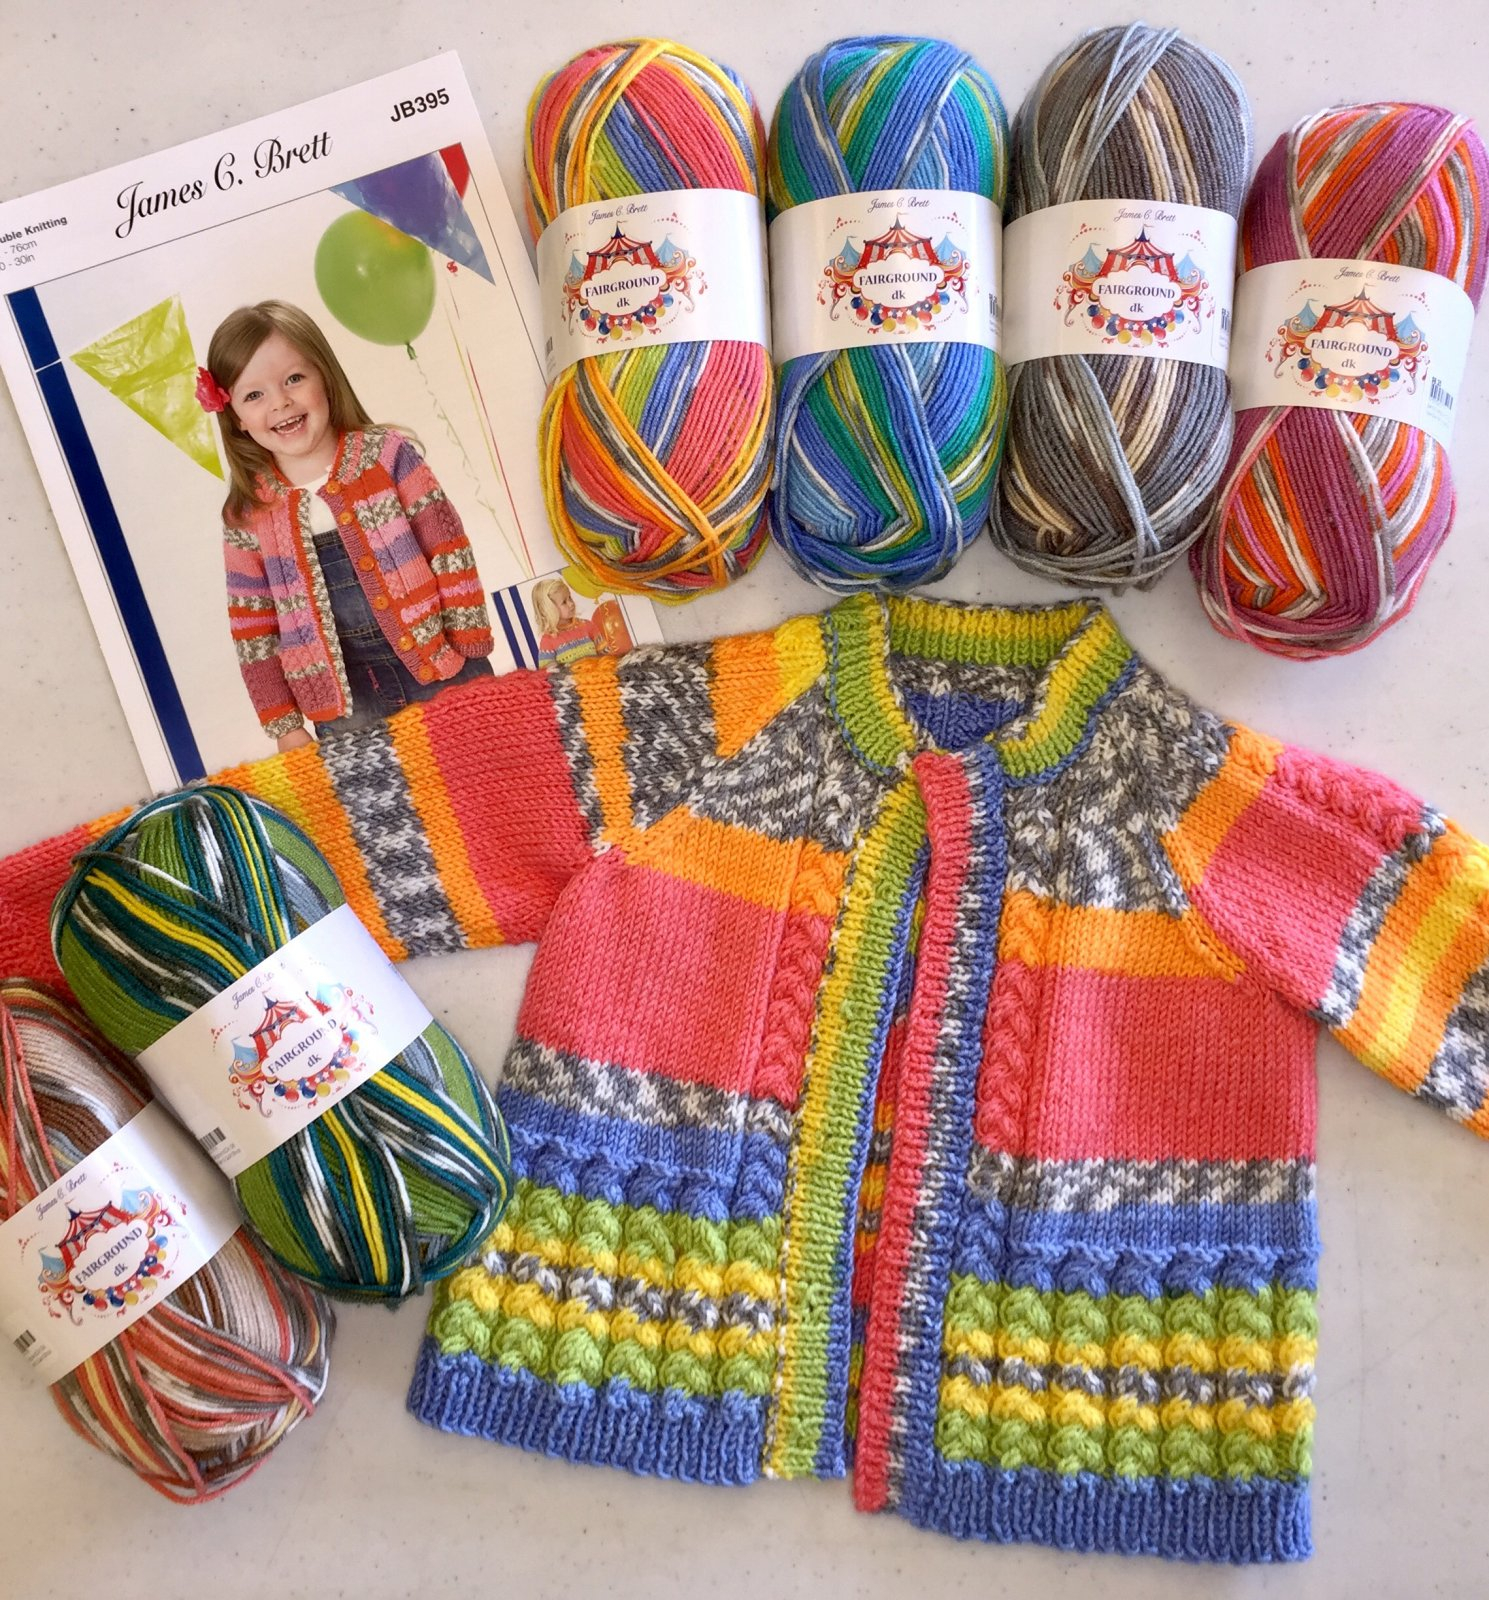 Knitted Childrens Sweaters Free Patterns Knitting Books Patterns